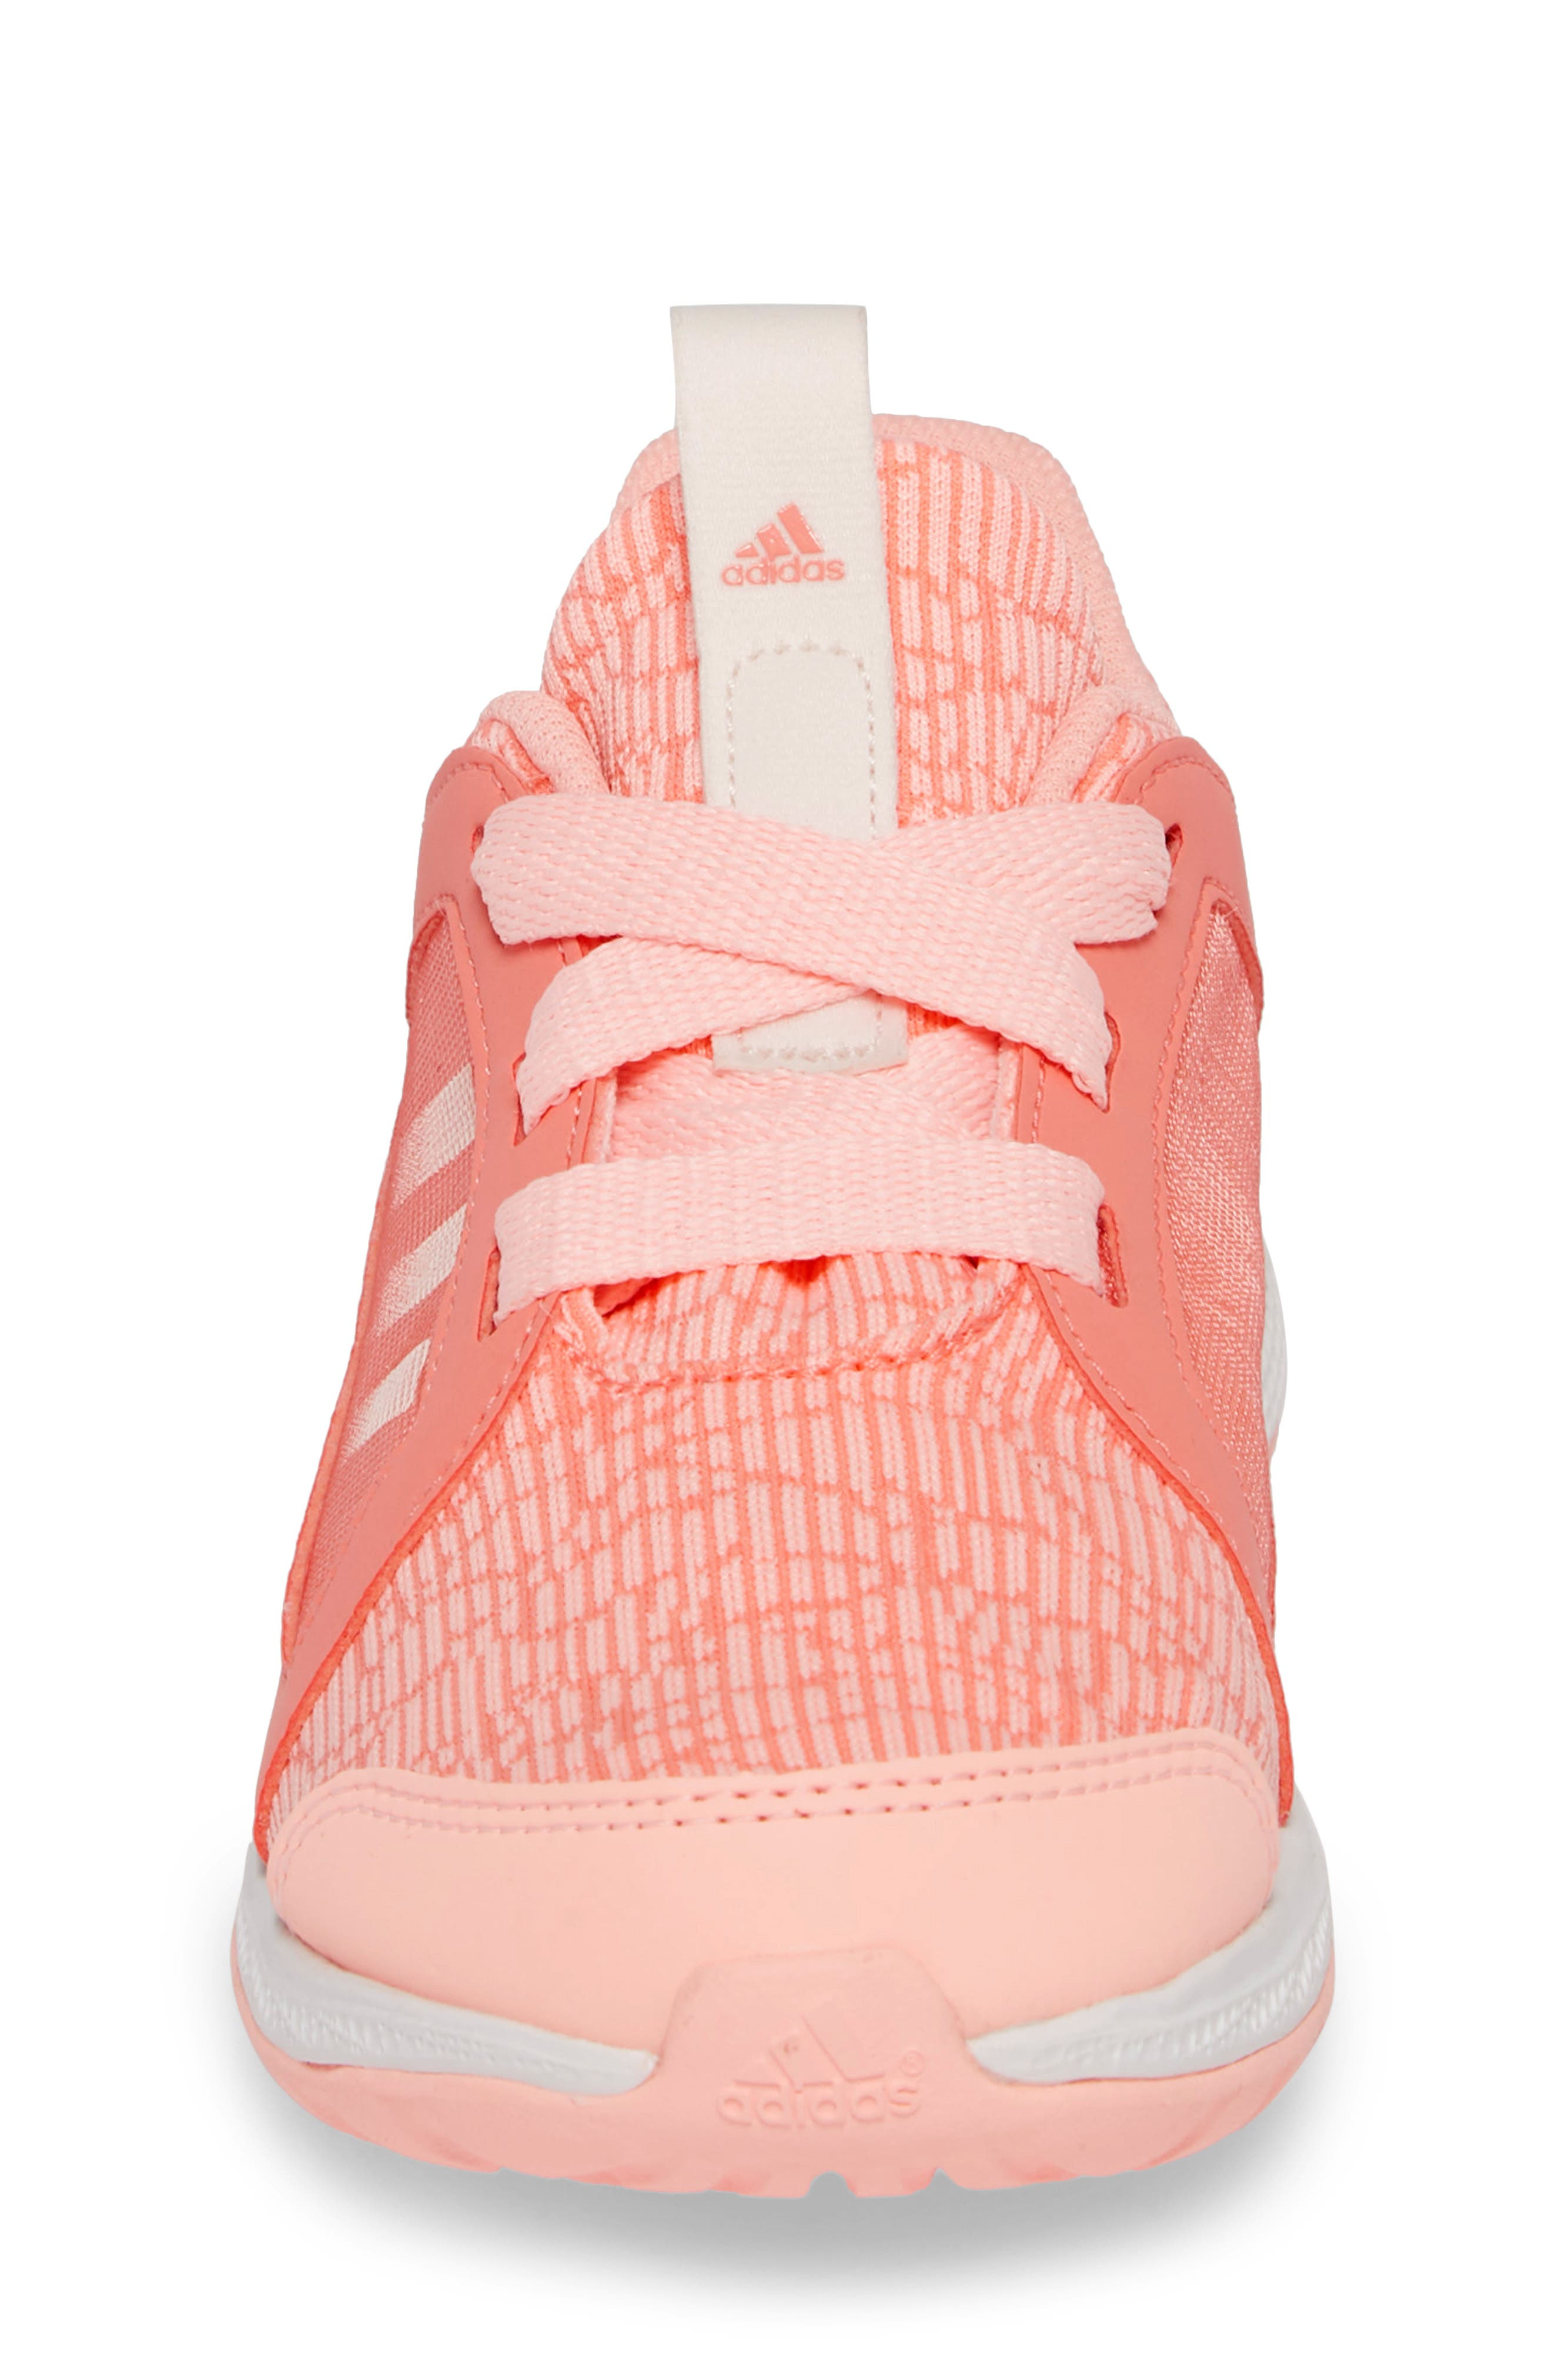 Edge Lux Running Shoe,                             Alternate thumbnail 4, color,                             CHALK CORAL/ WHITE/ ORANGE